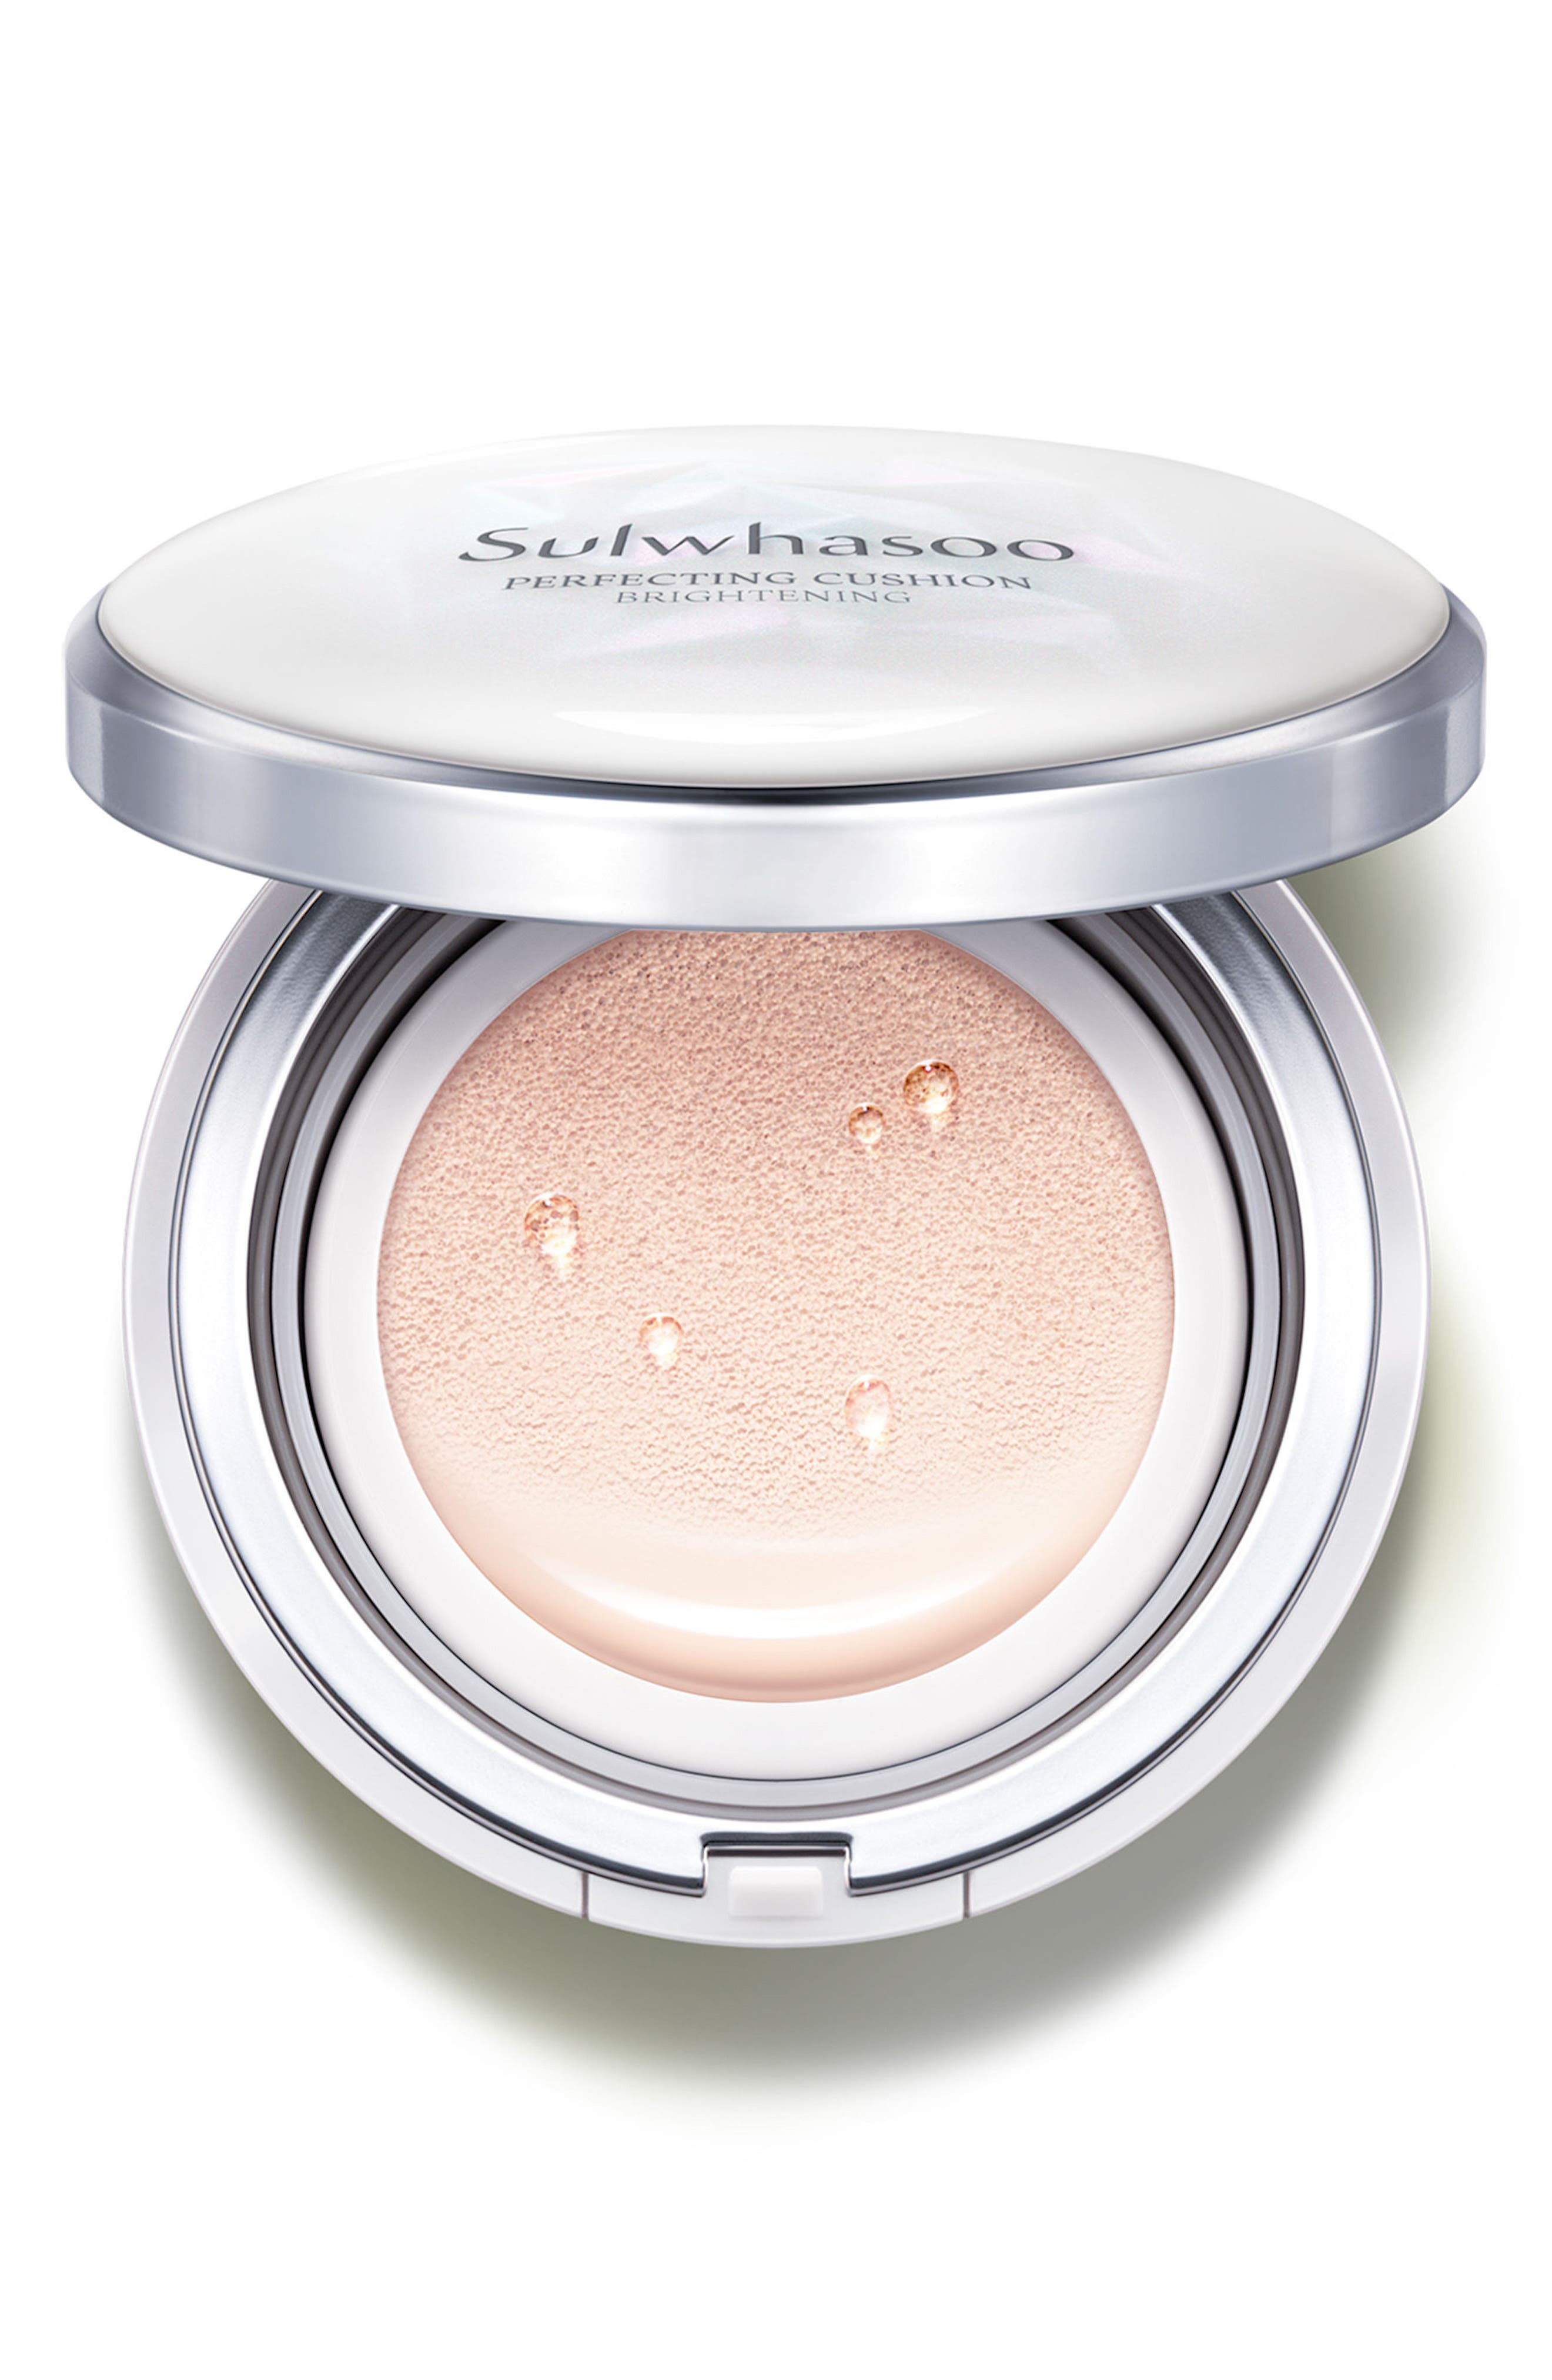 Perfecting Cushion Brightening Foundation,                         Main,                         color, 11 PALE PINK